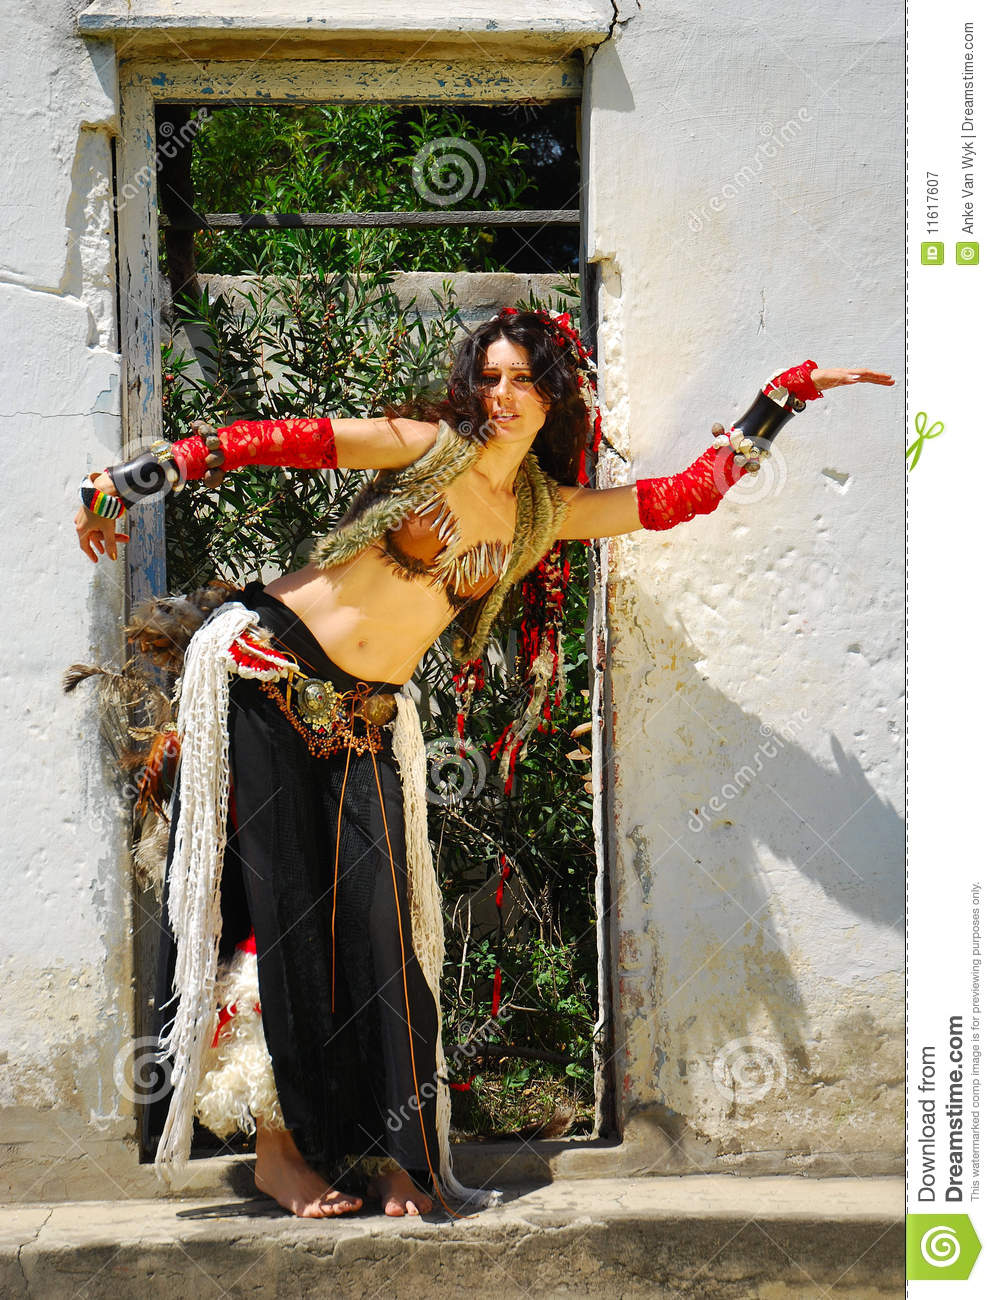 Gypsy belly dancer woman stock image. Image of clothes ...